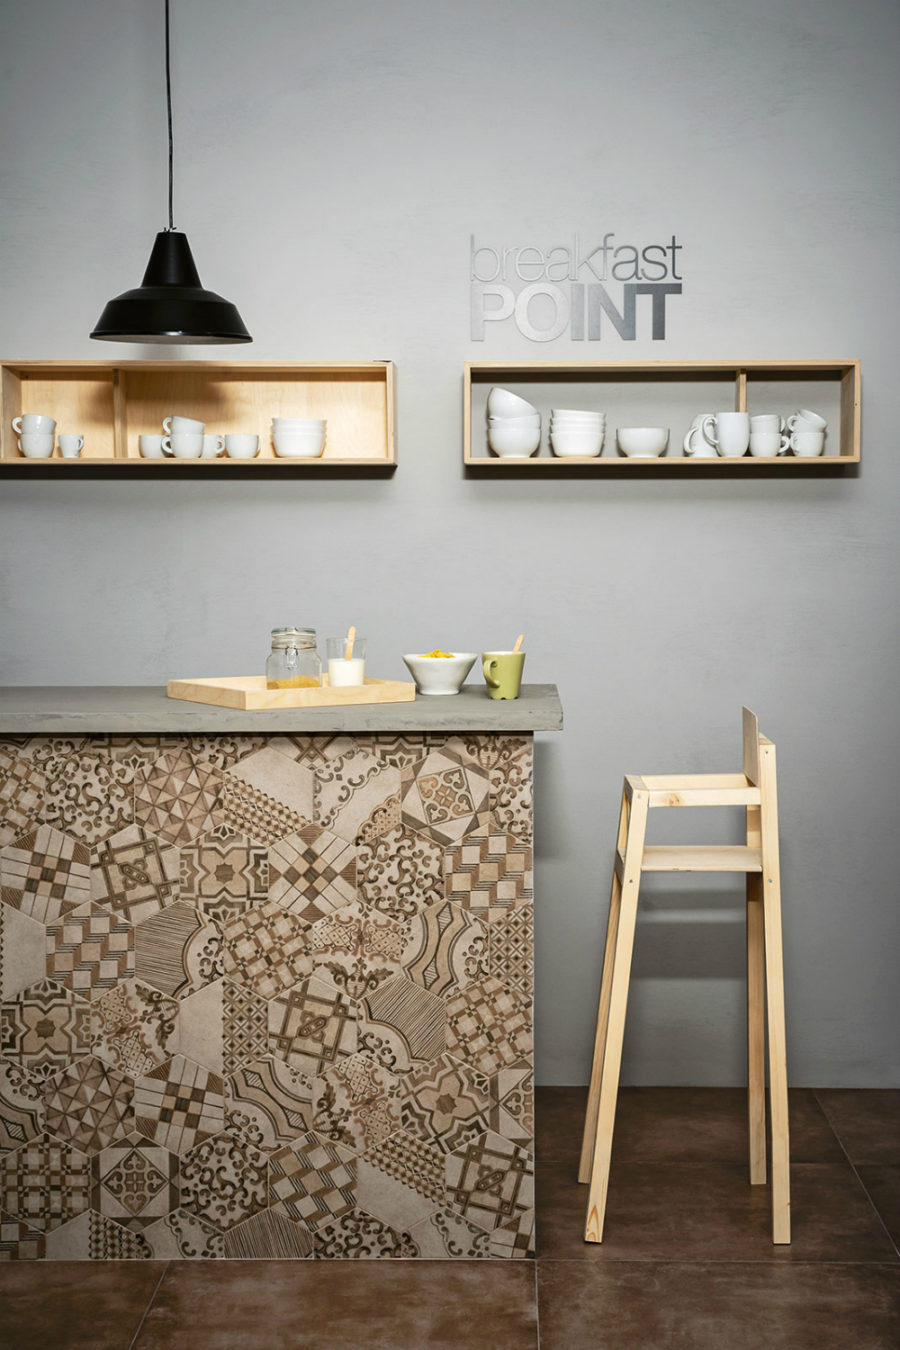 Tiles from Marazzi's Clays collection